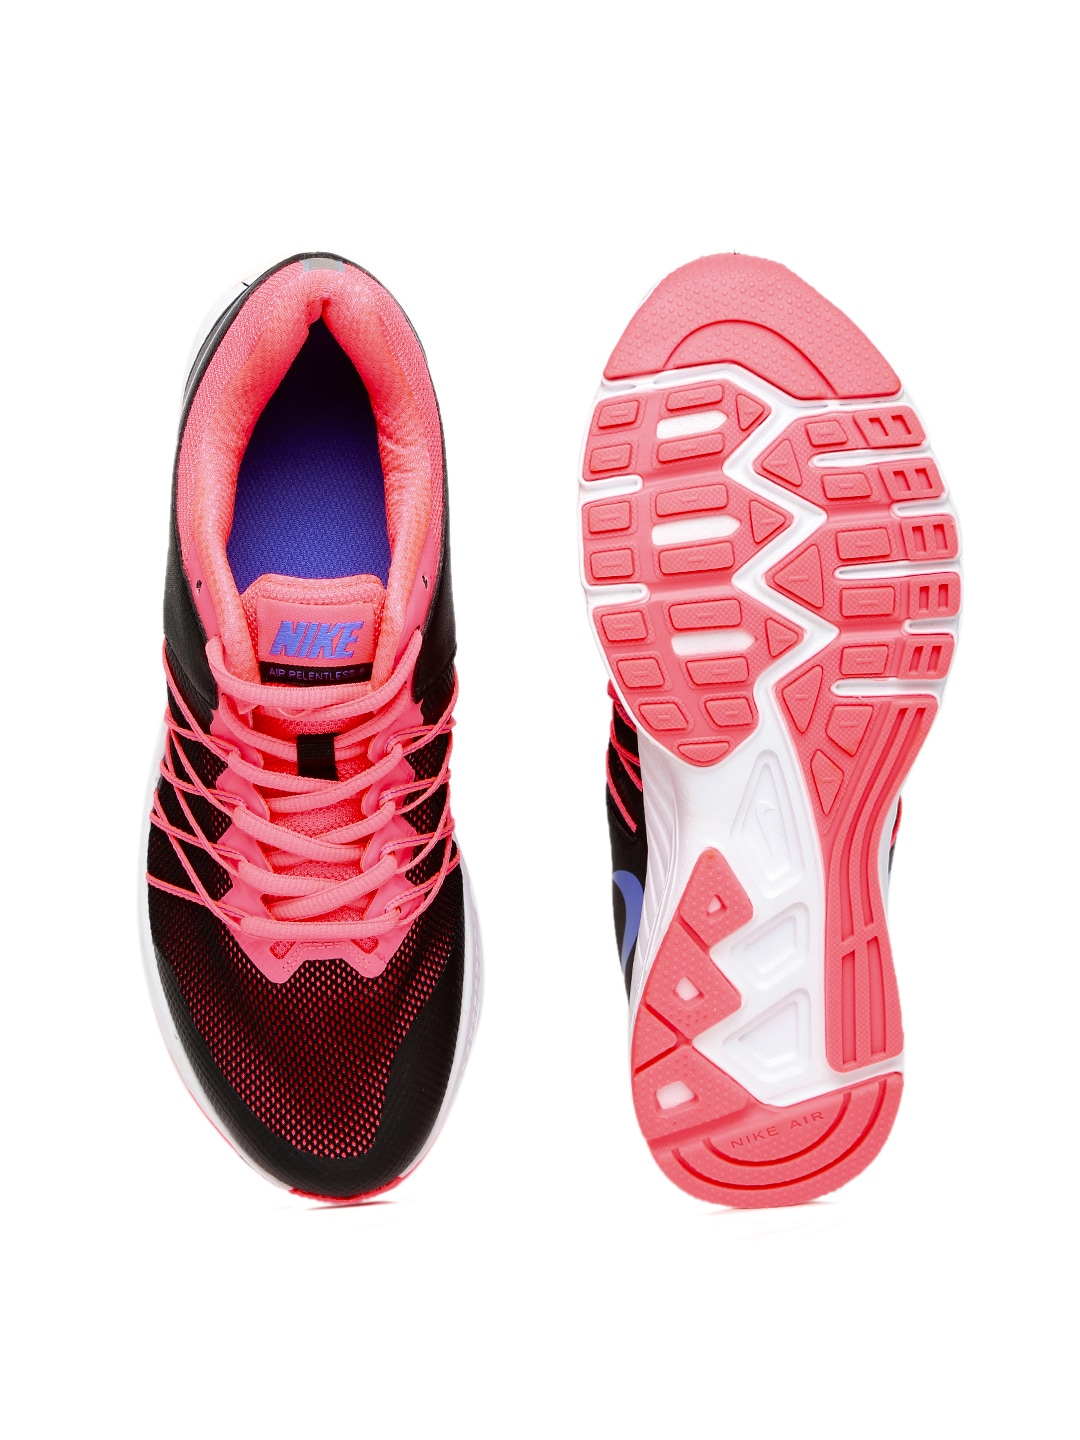 sports shoes fc621 1dee1 Nike Roshe Two (3 6) Older Kids  Shoe. Nike UK. Cheap Nike Roshe Two Sale. nike  roshe two mens womens light iron summit Grapevine CrossFit